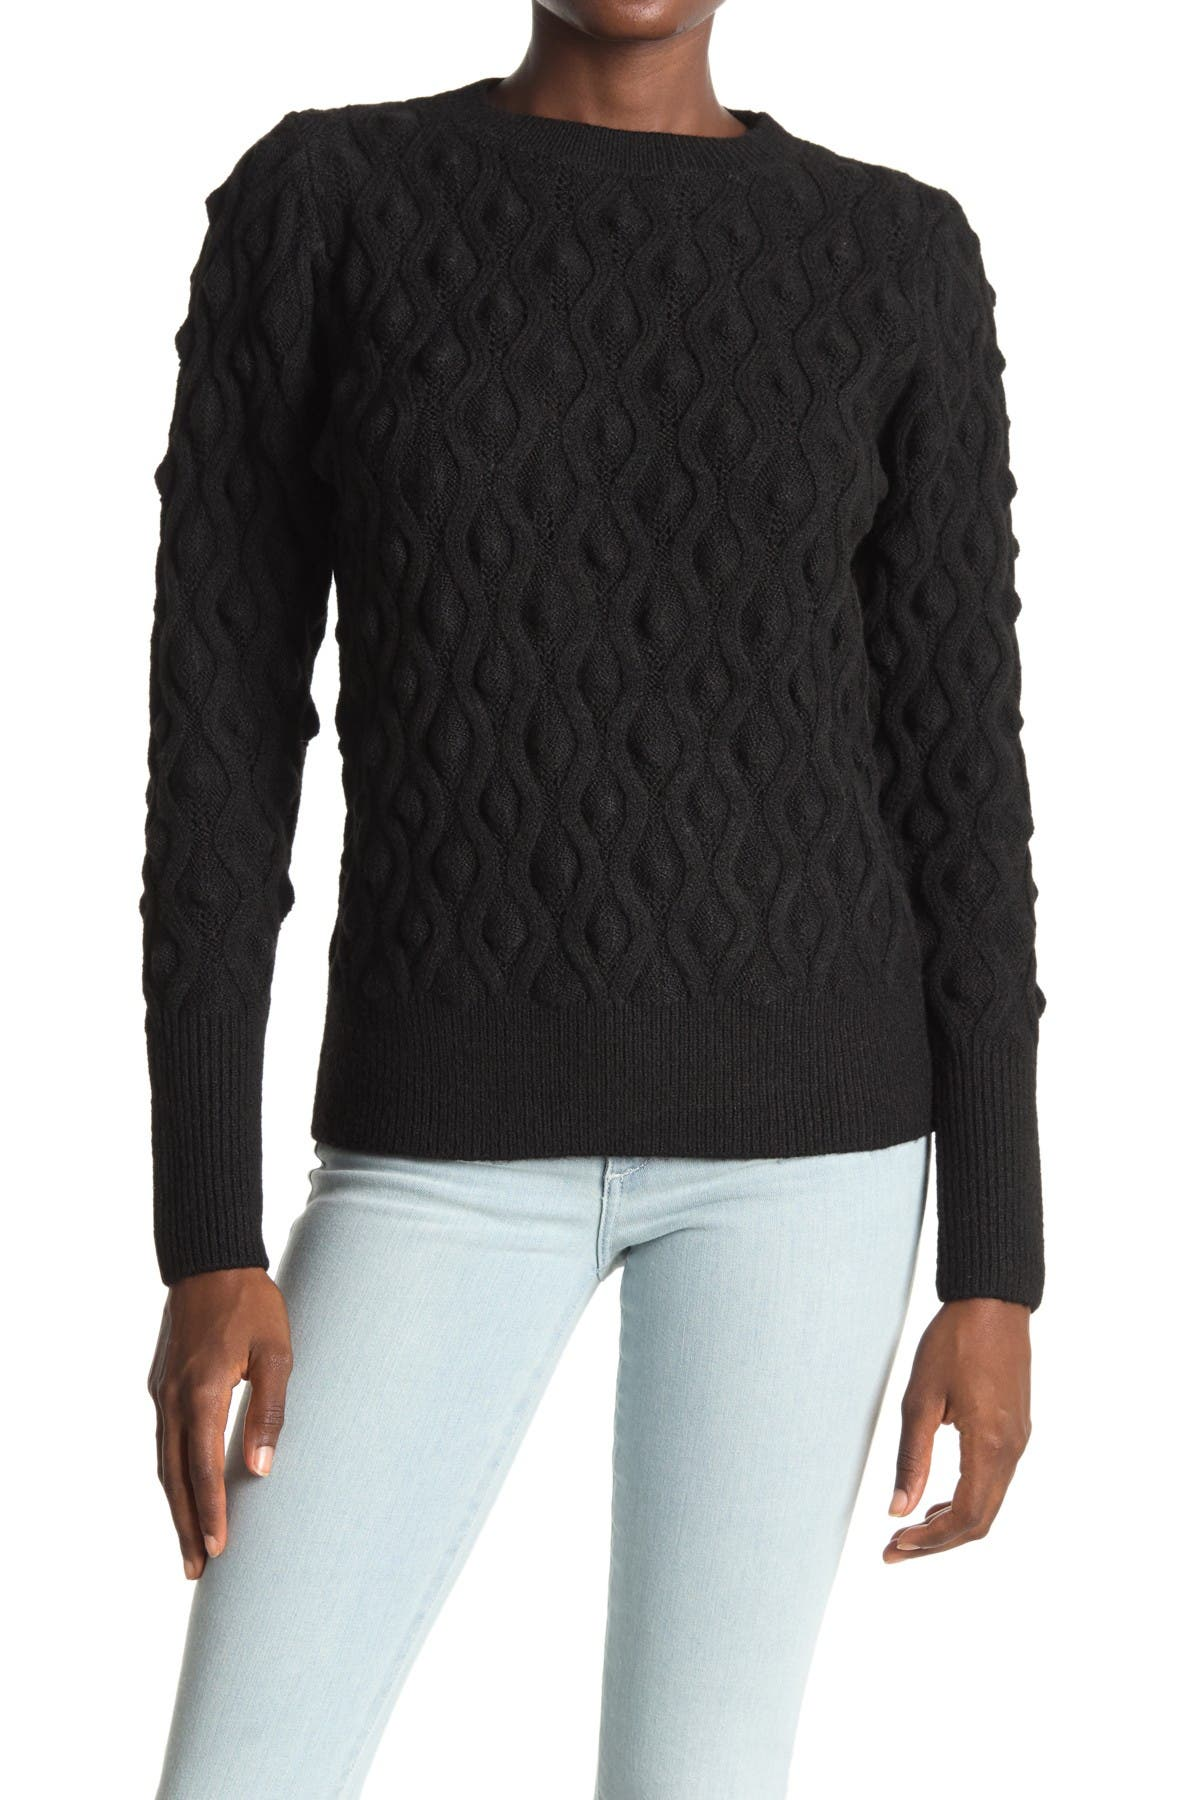 Image of Sweet Romeo Popcorn Knit Crew Neck Pullover Sweater